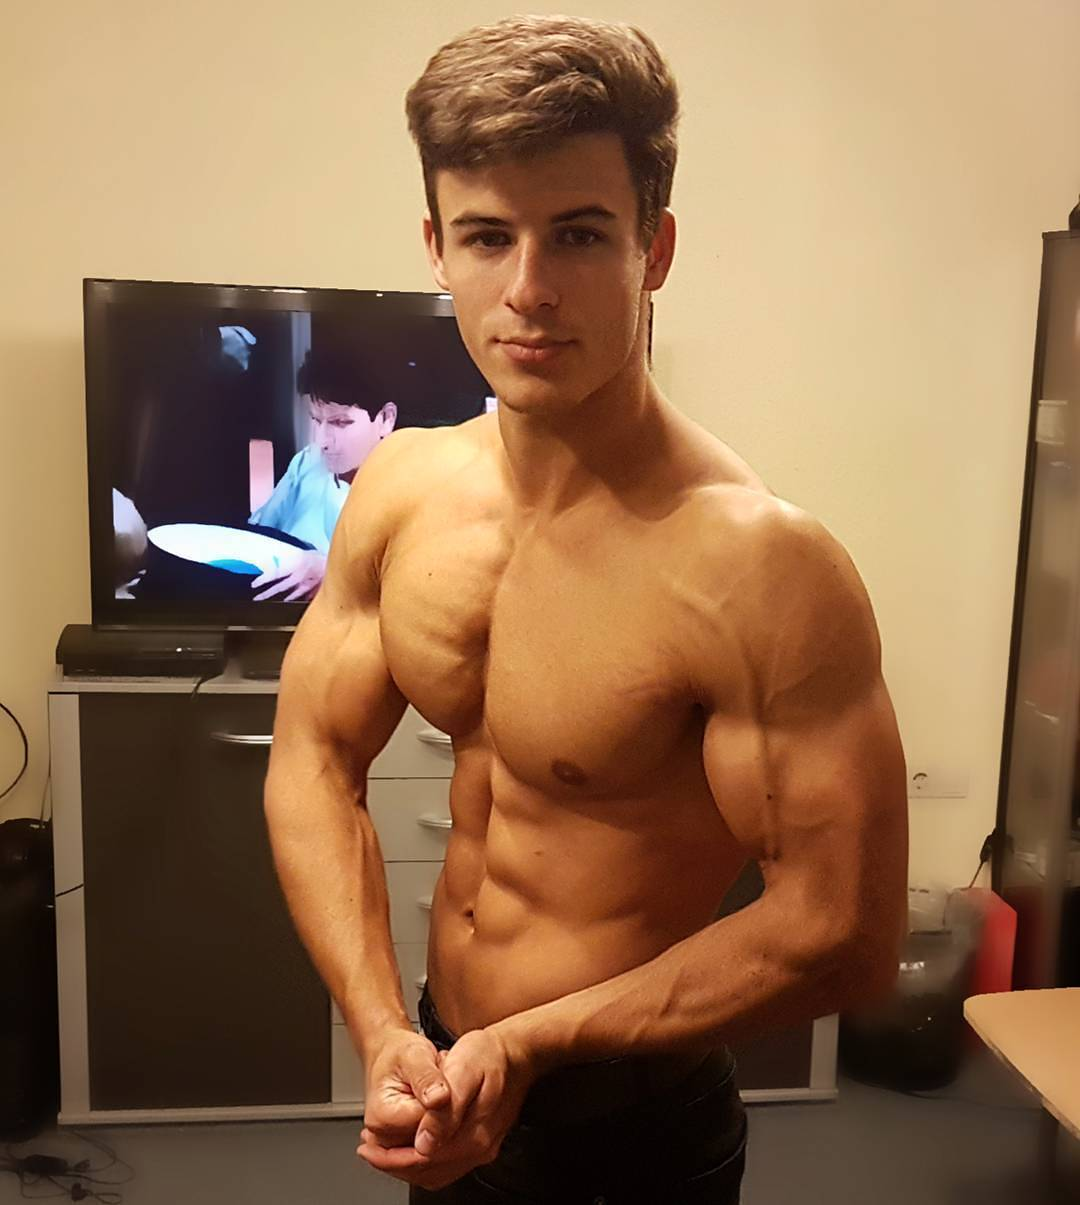 handsome-young-fit-shirtless-guy-flexing-muscular-body-pecs-veiny-biceps